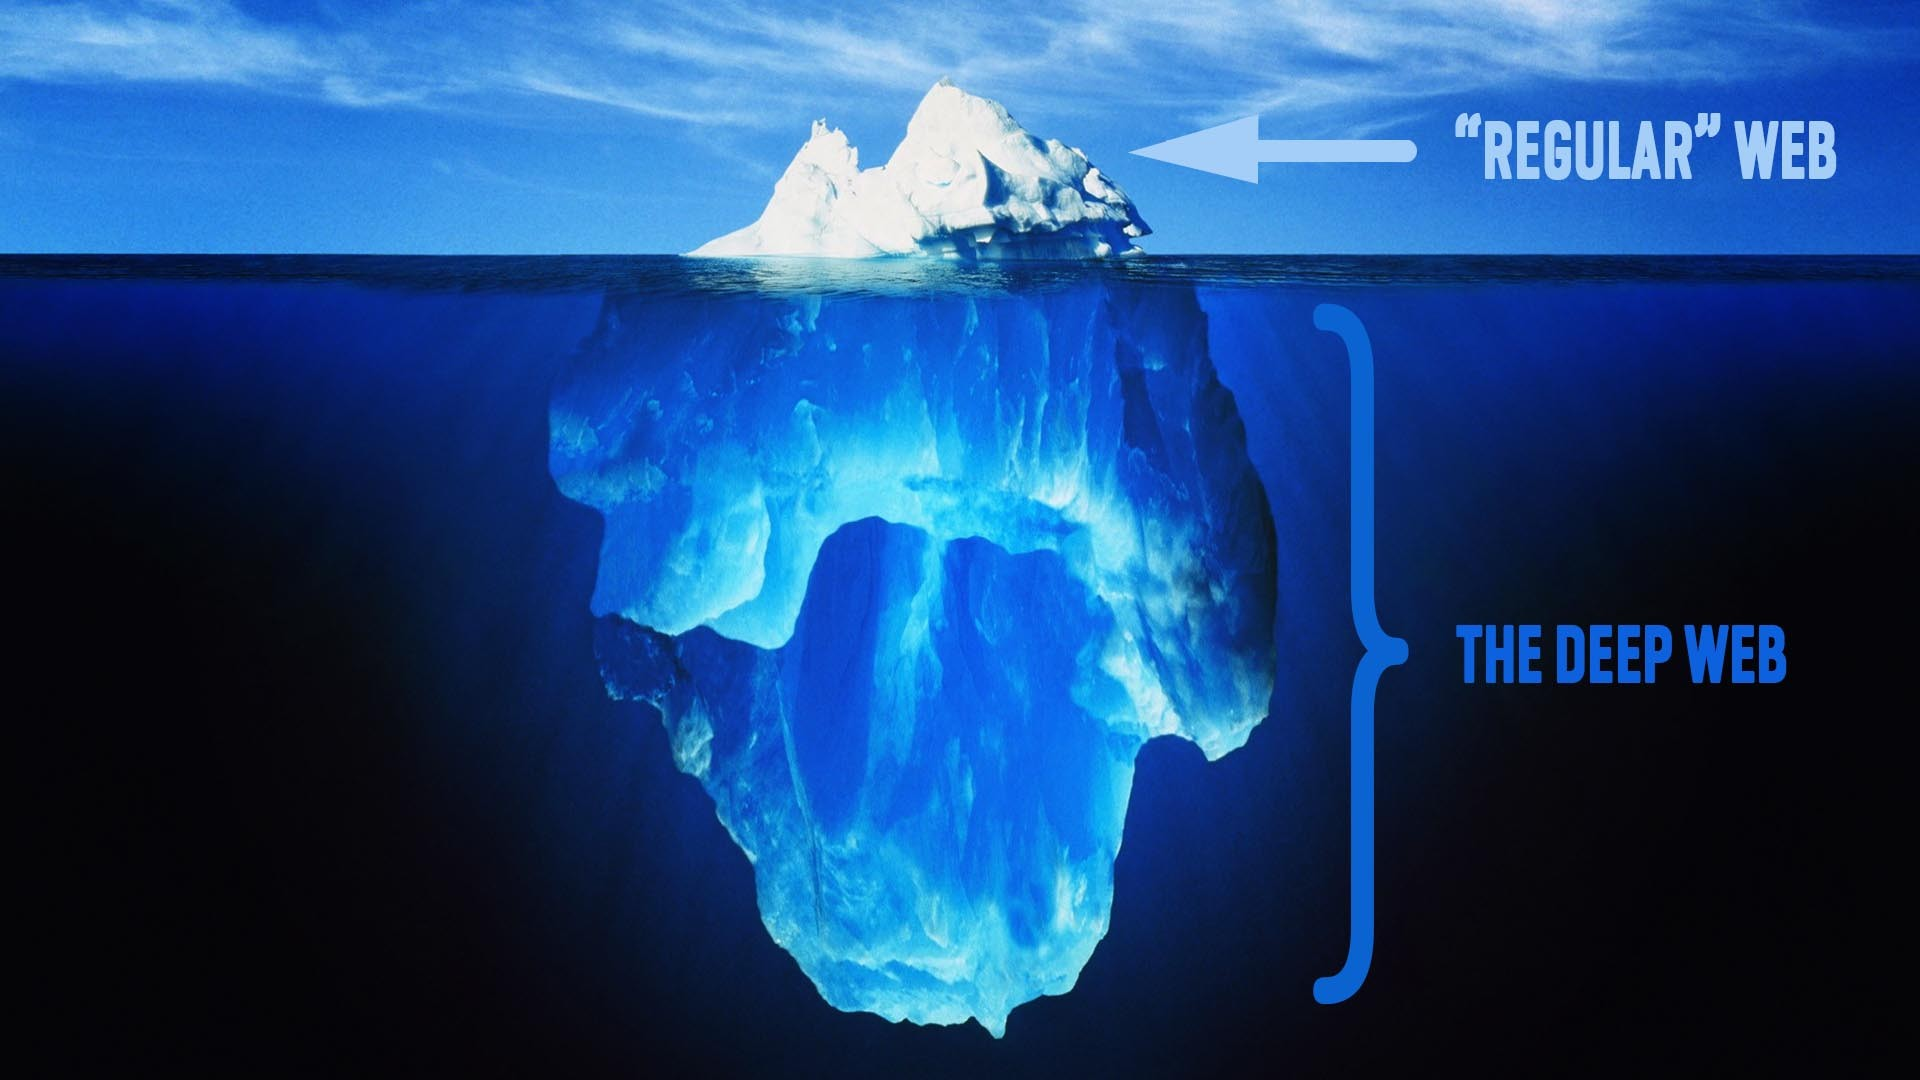 General 1920x1080 internet deep web iceberg digital art typography cyan underwater ice humor blue